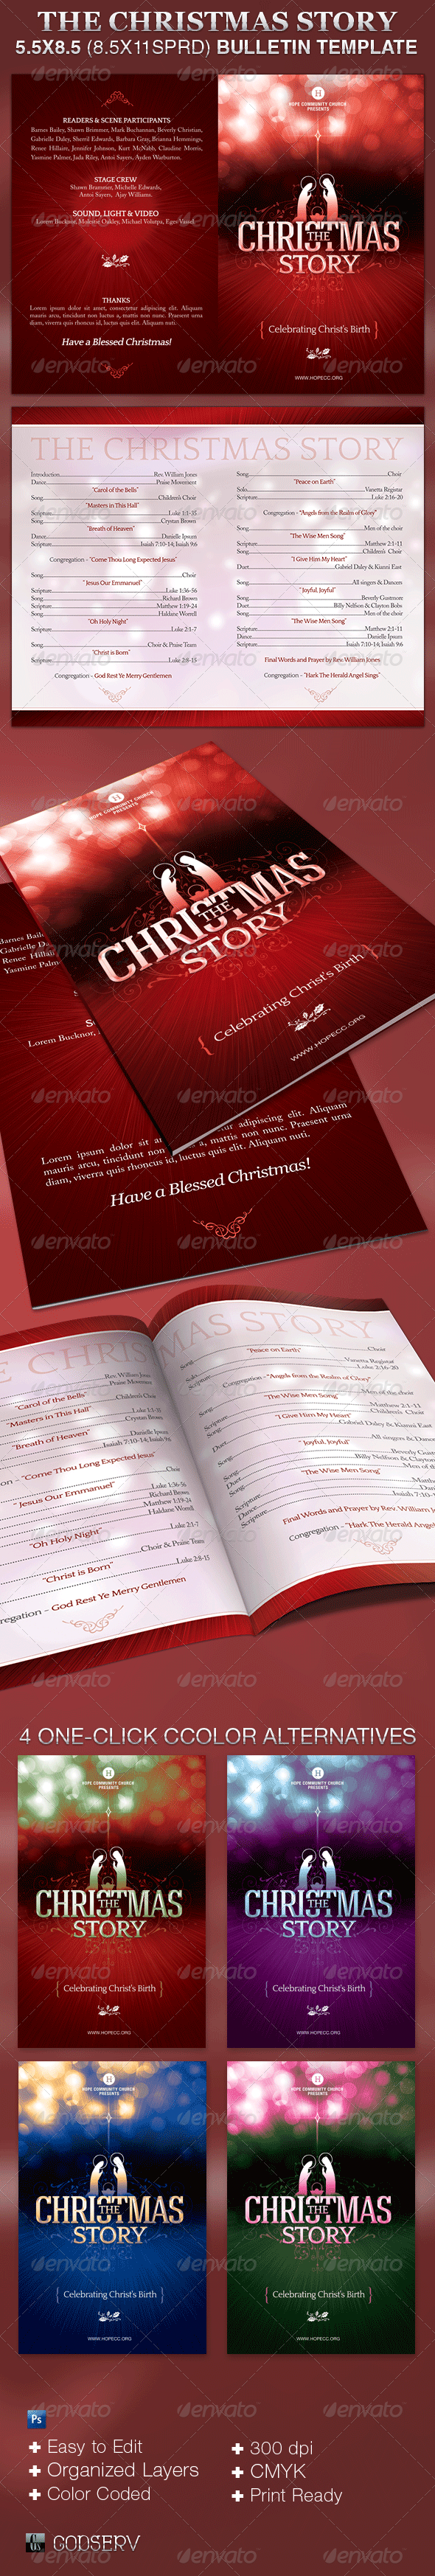 Christmas Story Graphics Designs Templates From Graphicriver